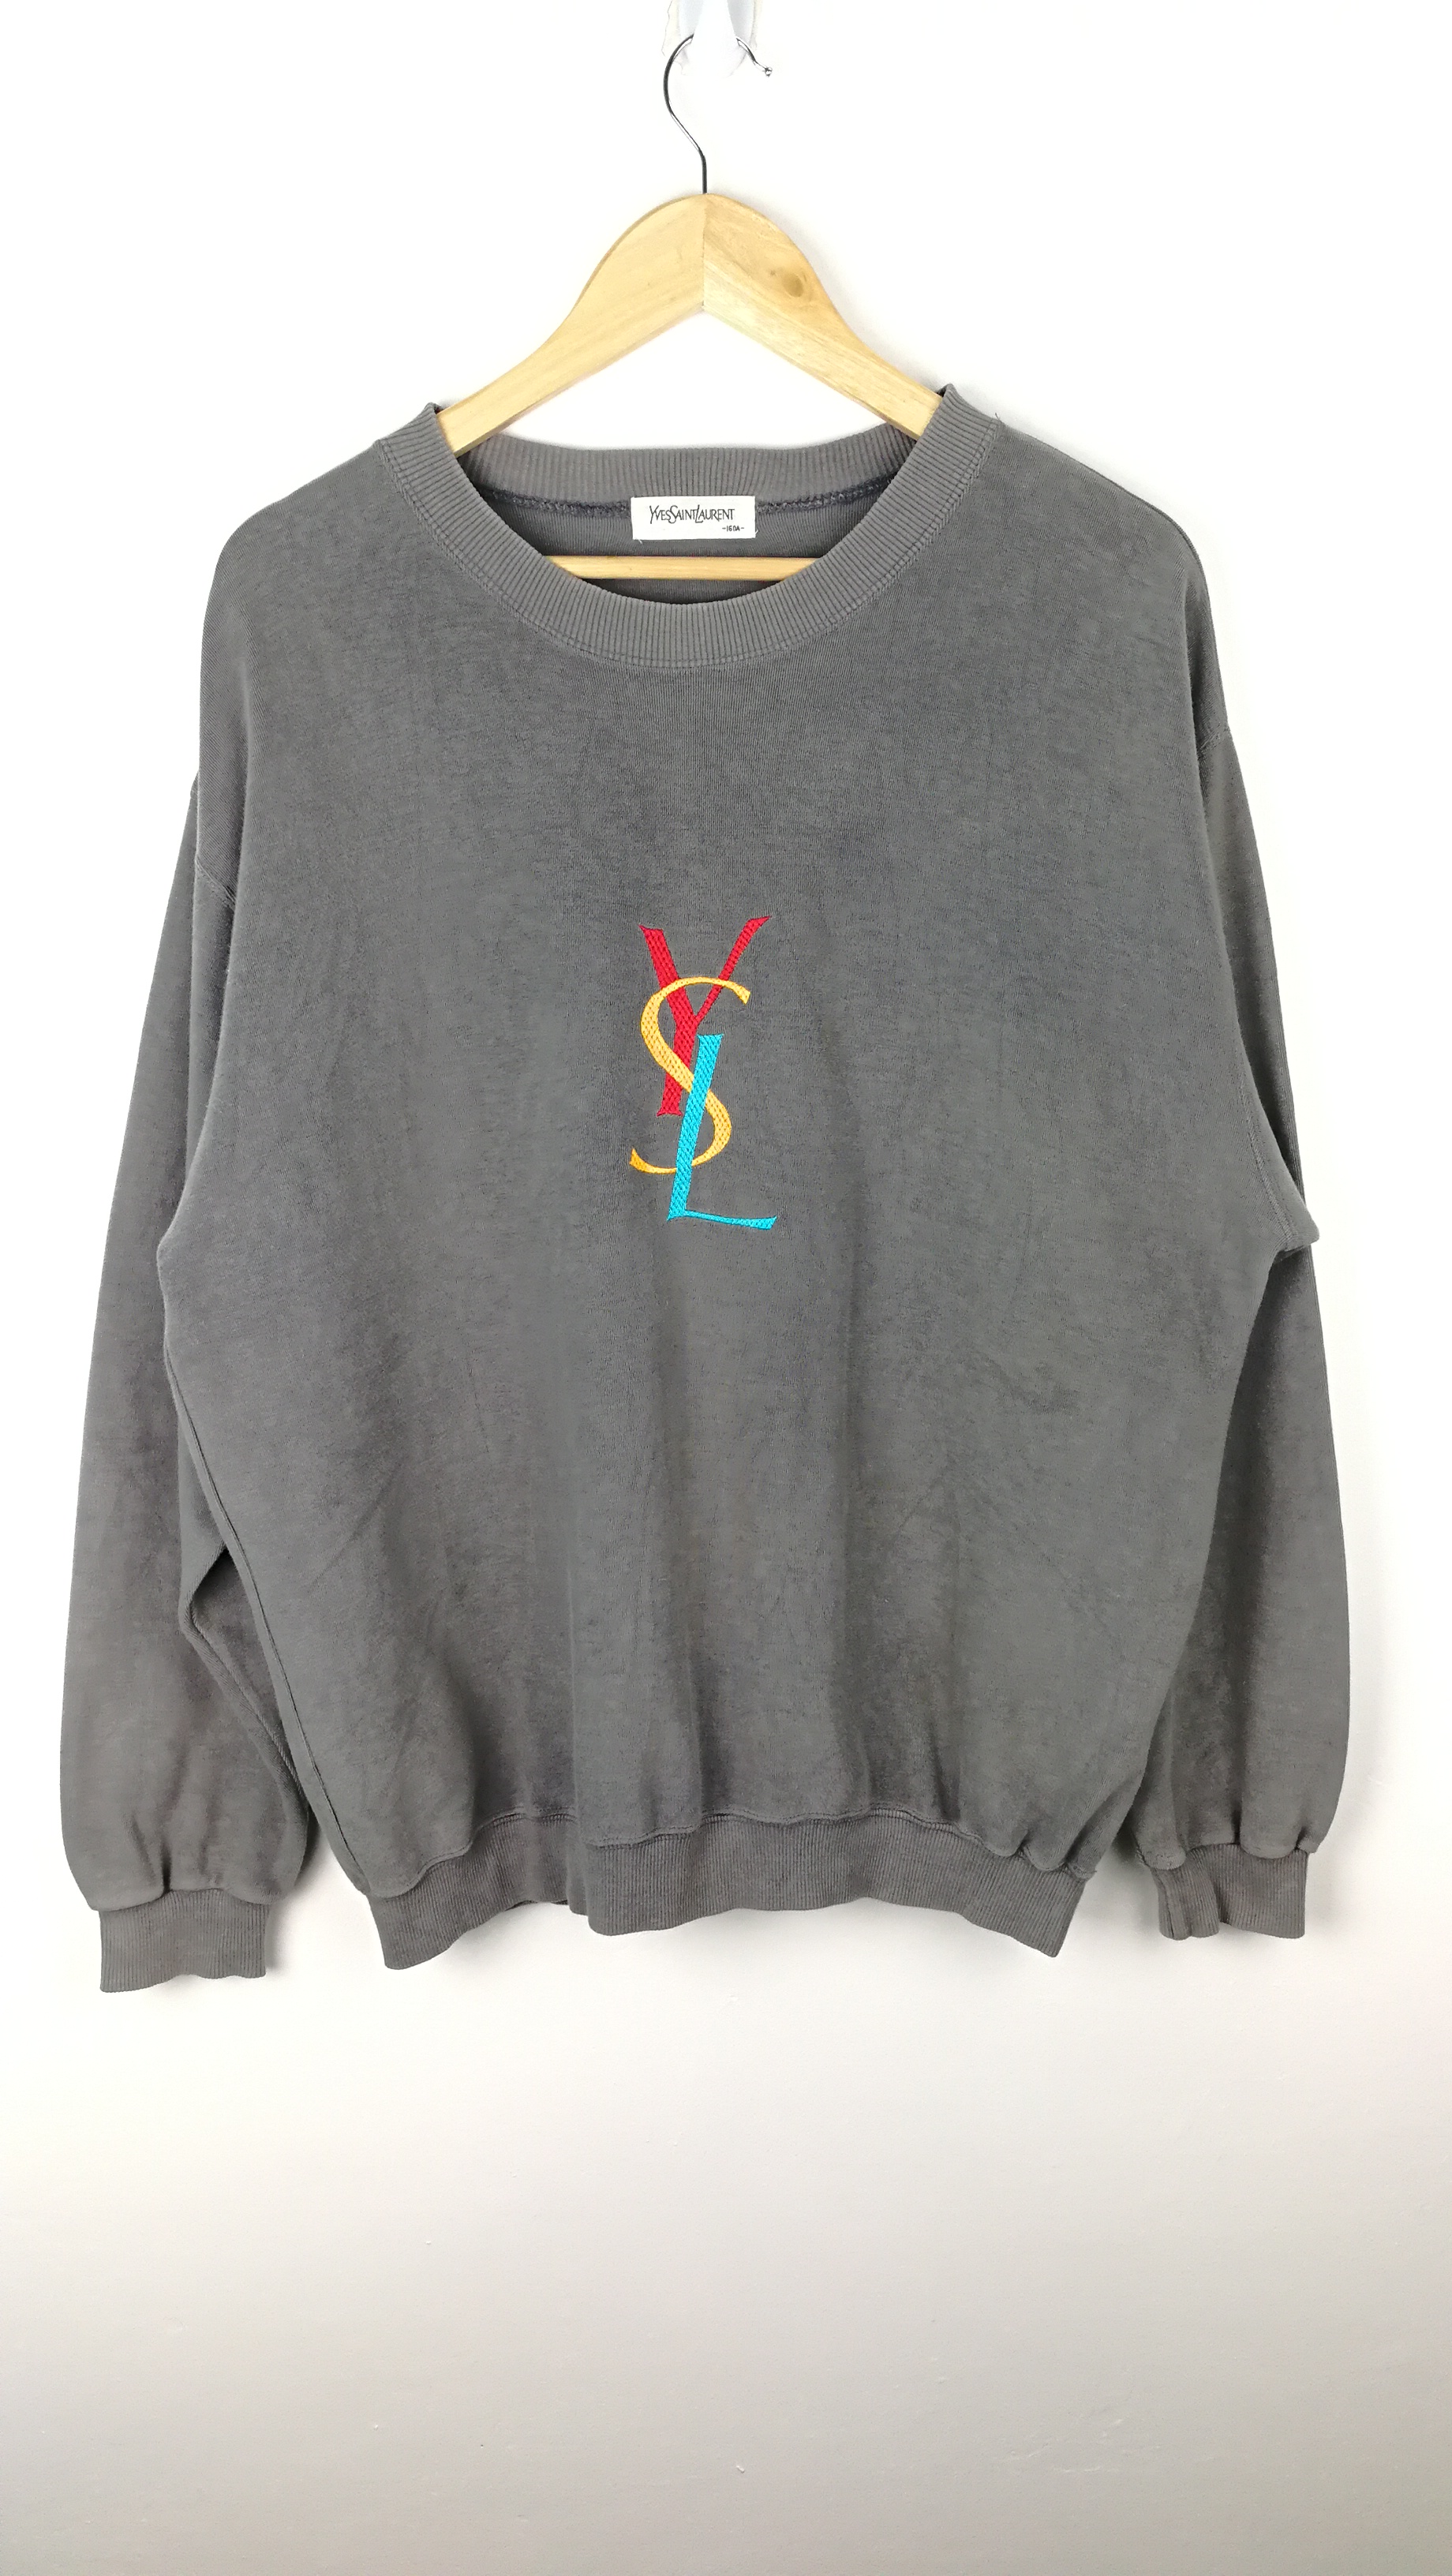 d75292794c1 Yves Saint Laurent ×. YSL MULTICOLOUR BIG LOGO SWEATSHIRT. Size: US XL / EU  56 / 4